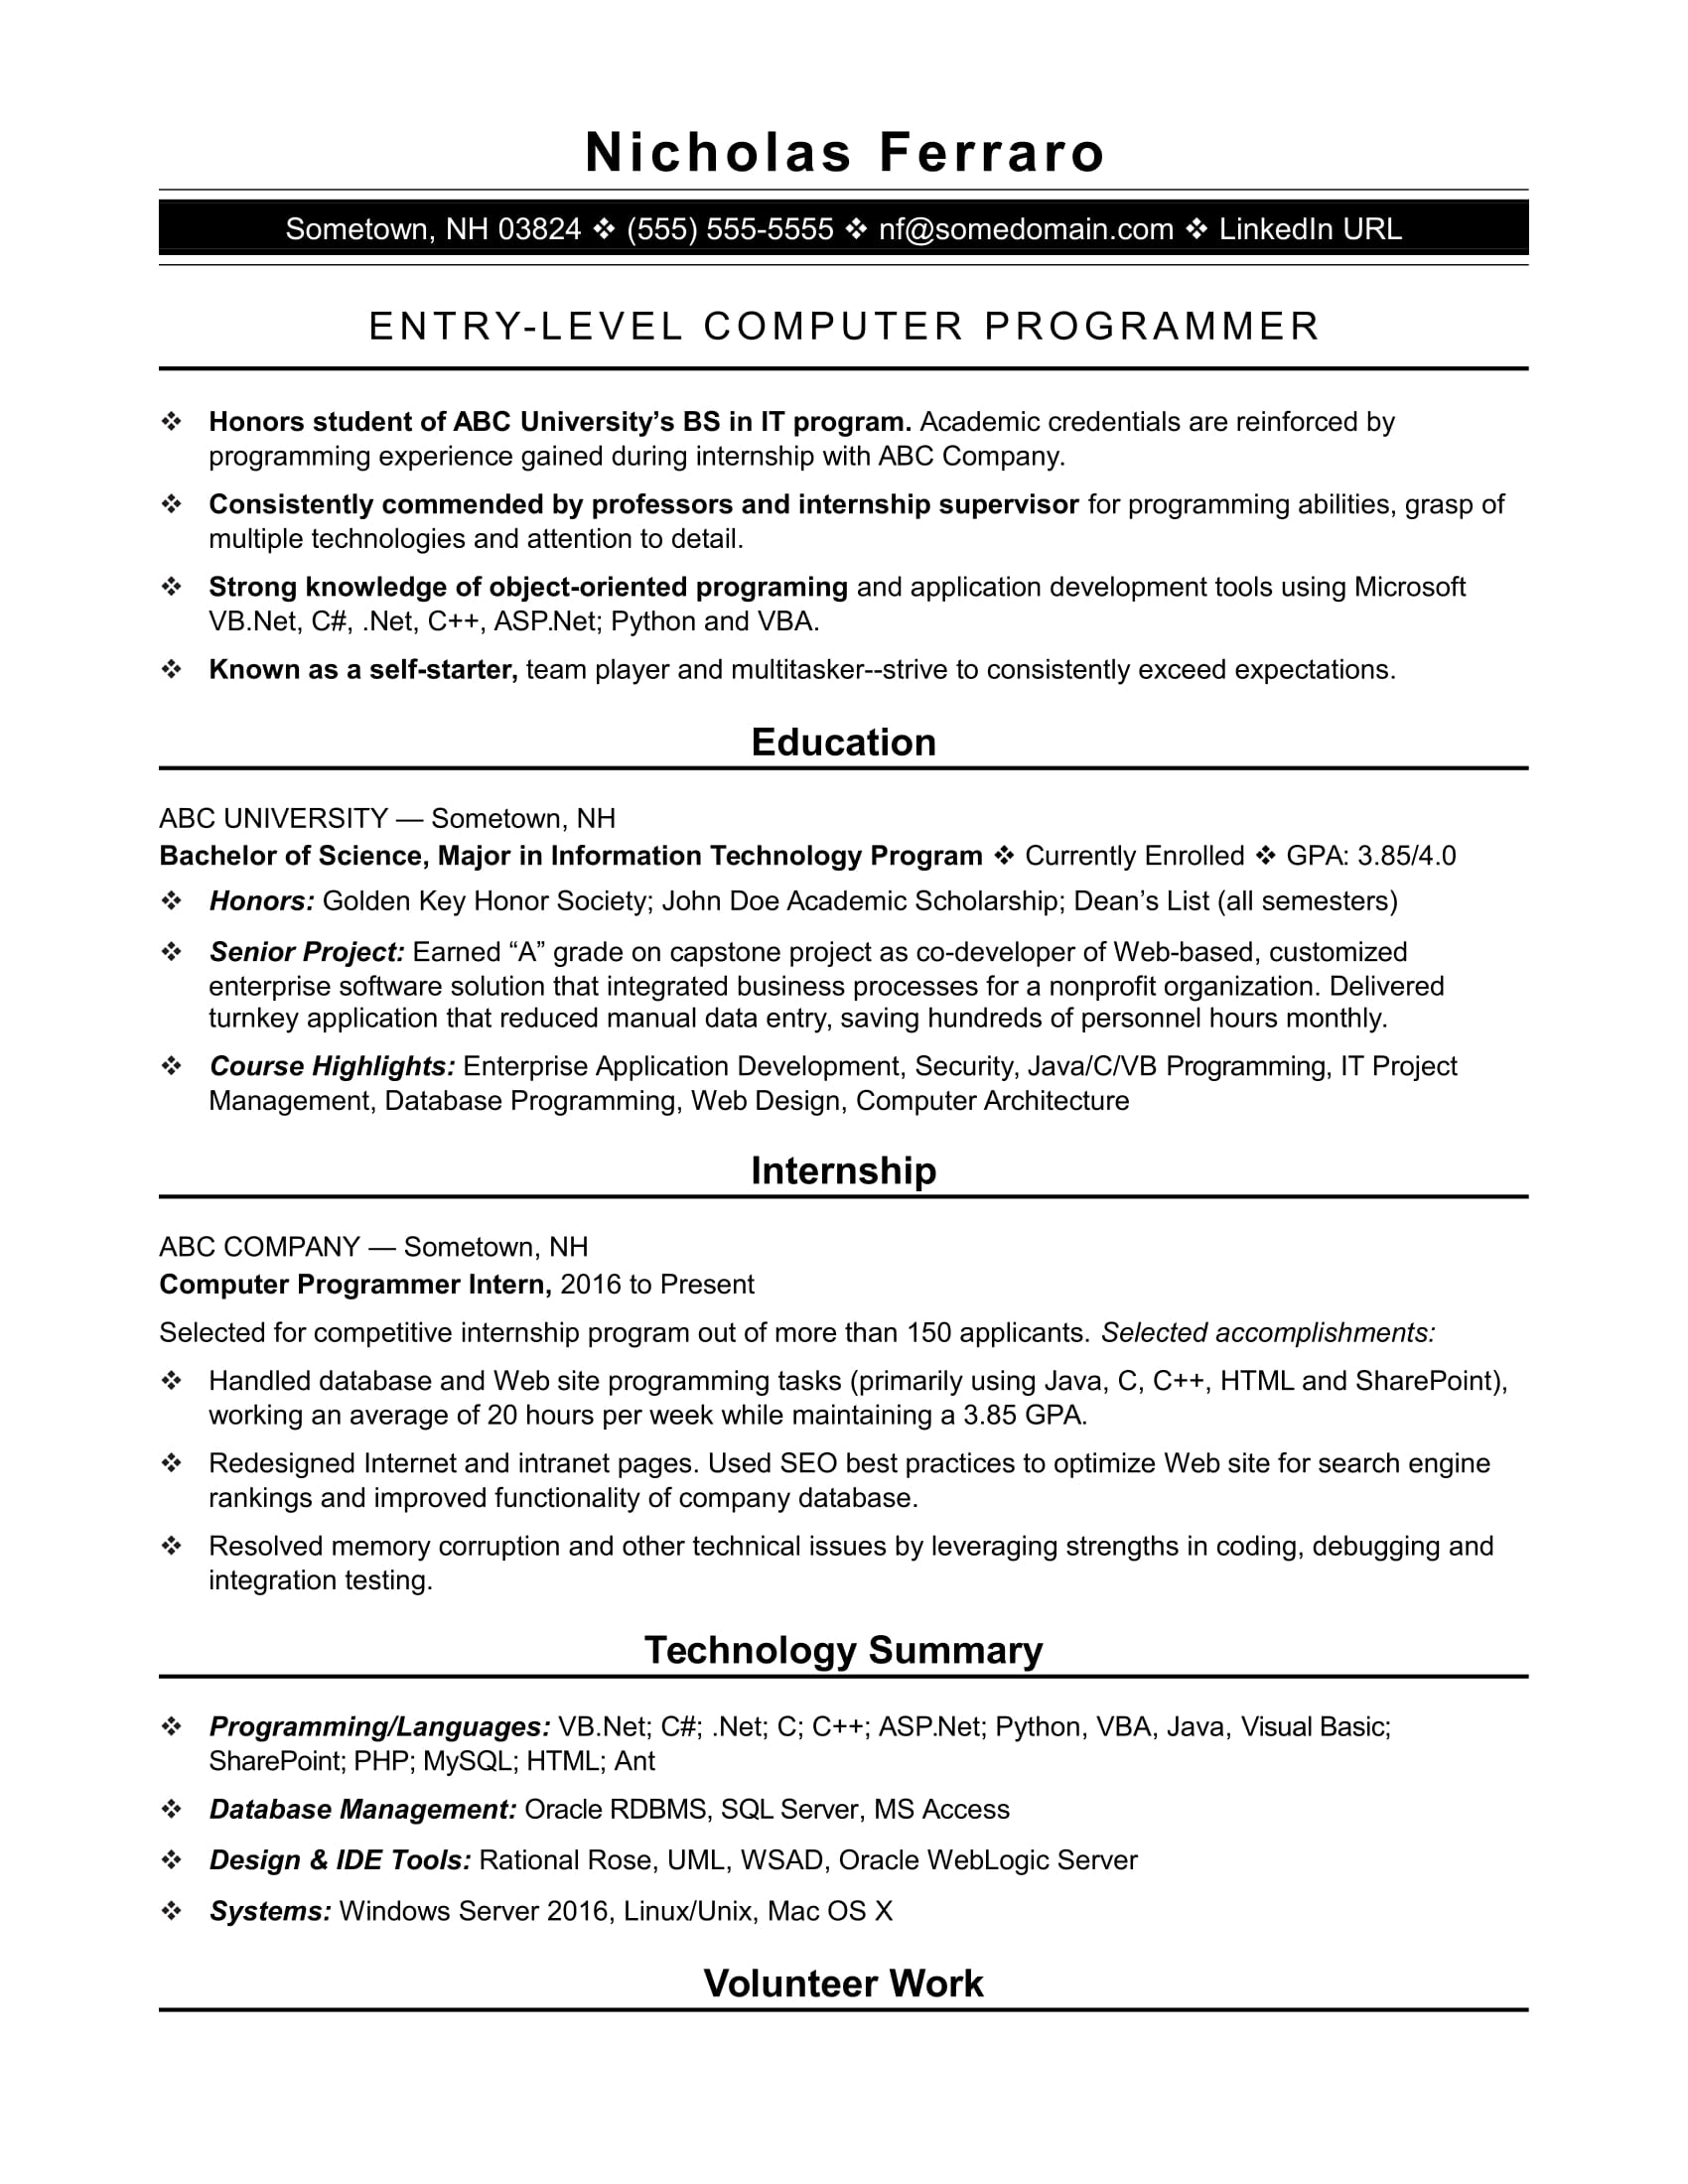 Sample Computer Skills For Resume Sample Resume For An Entry Level Computer Programmer